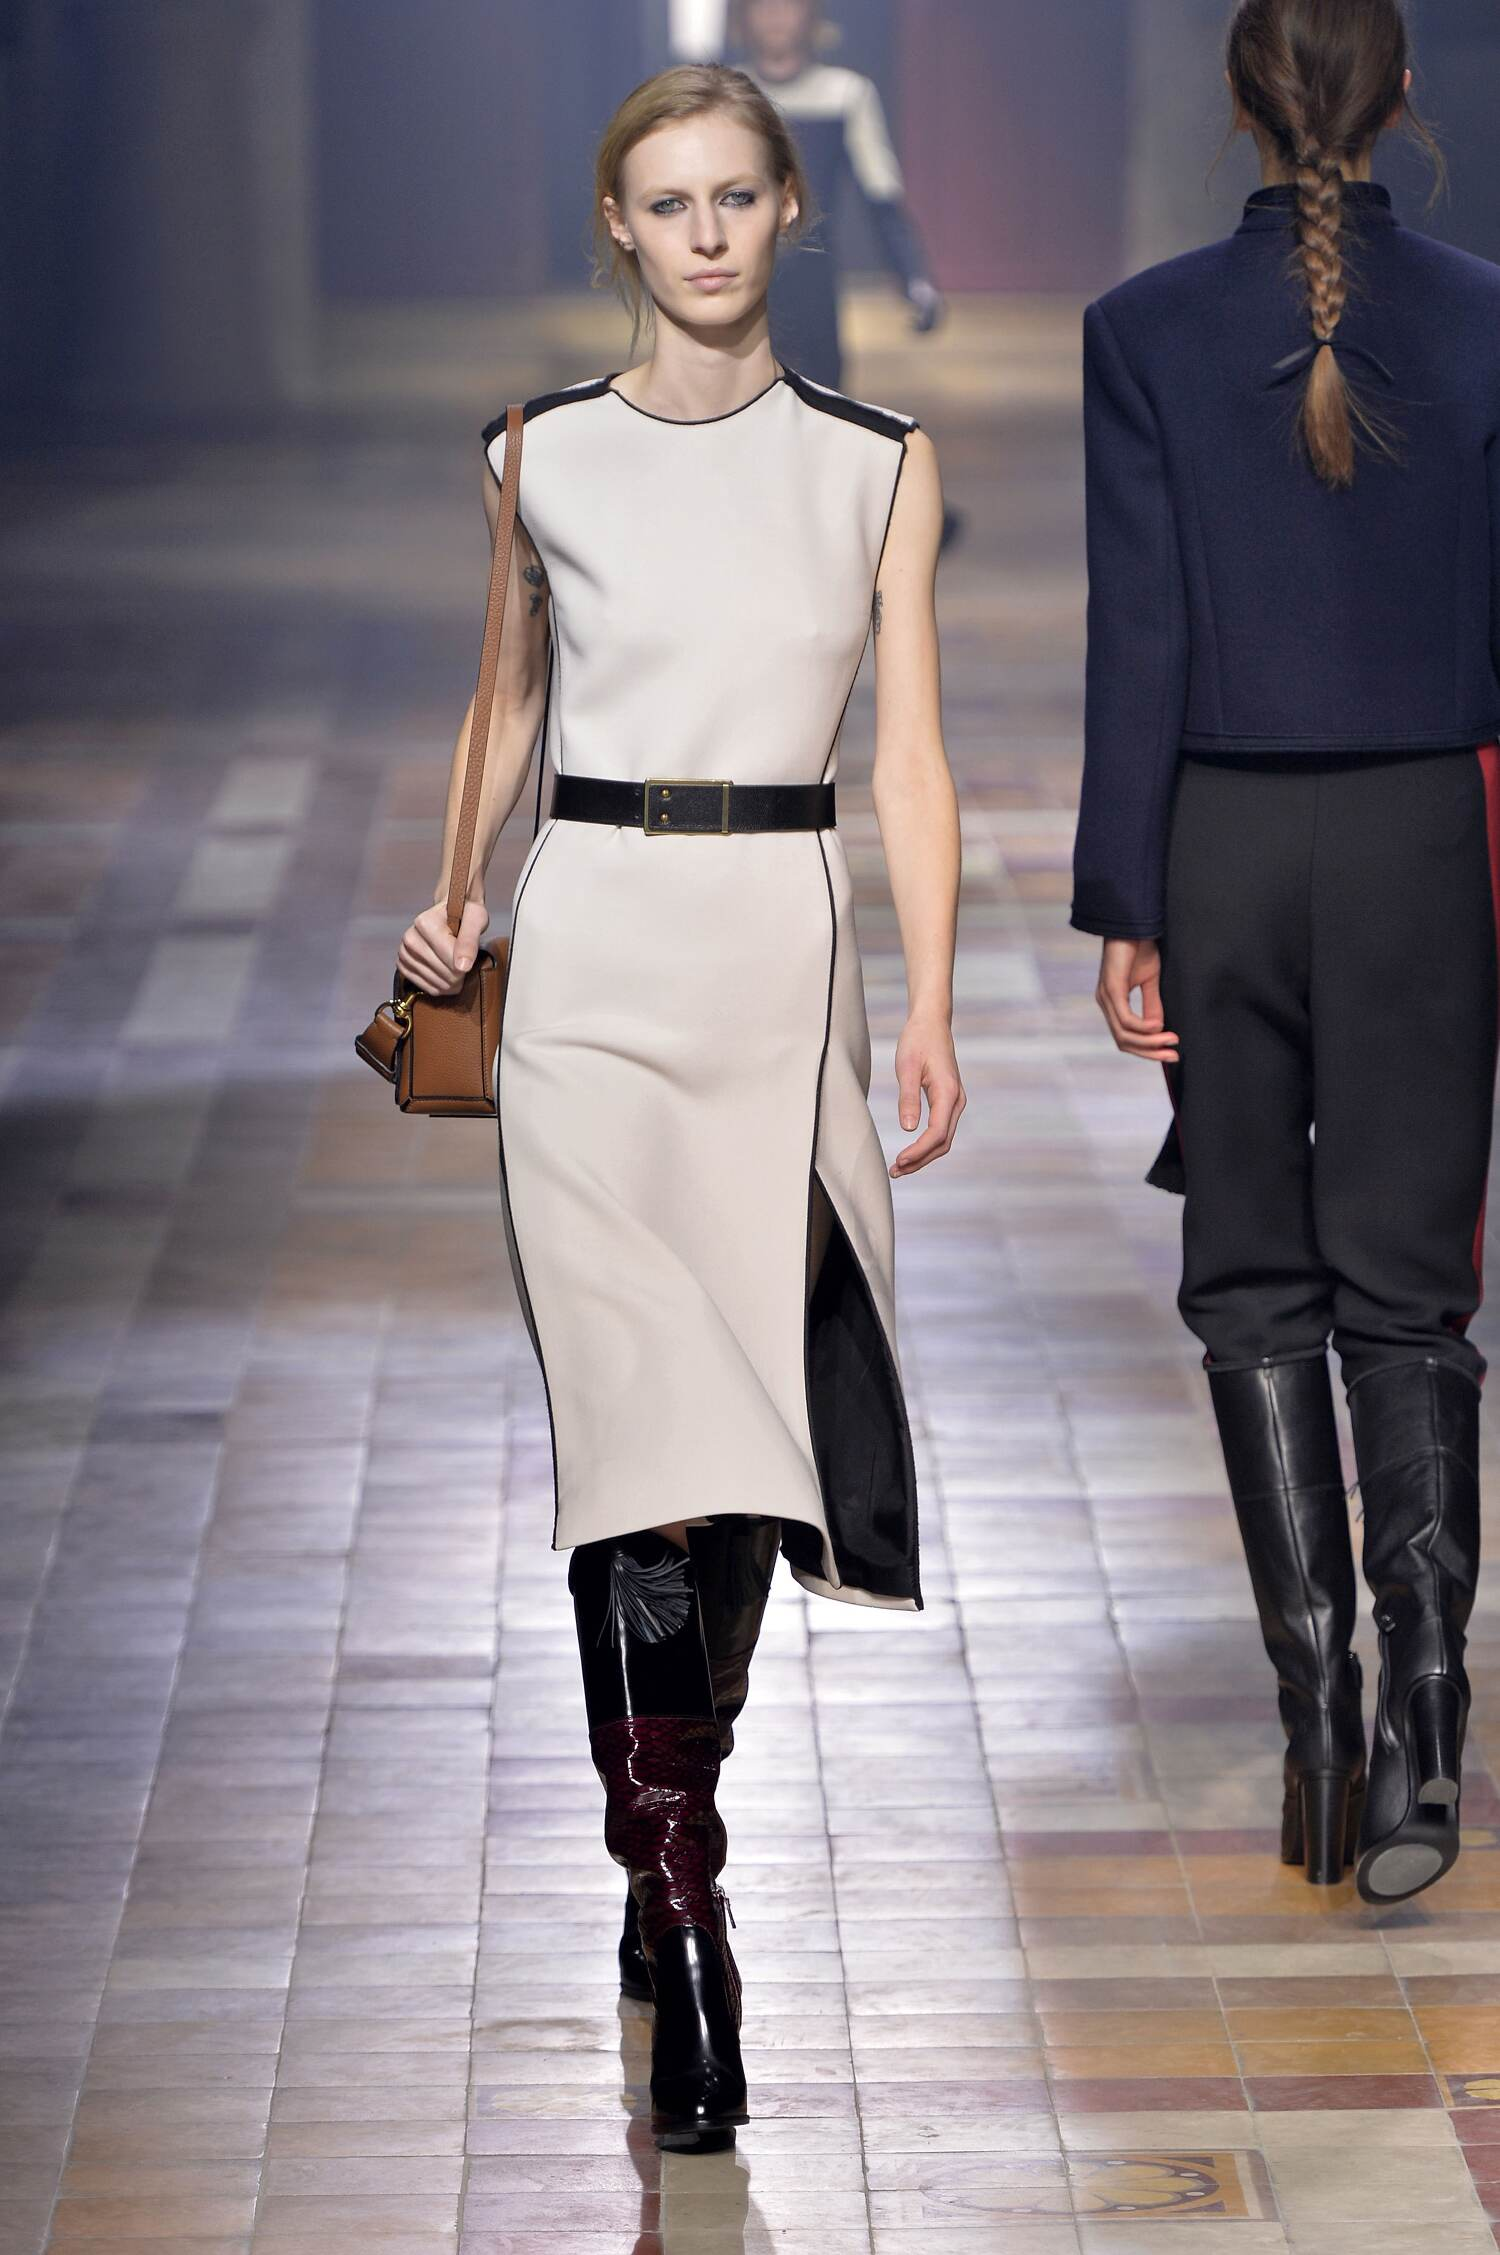 Winter 2015 Fashion Show Lanvin Collection